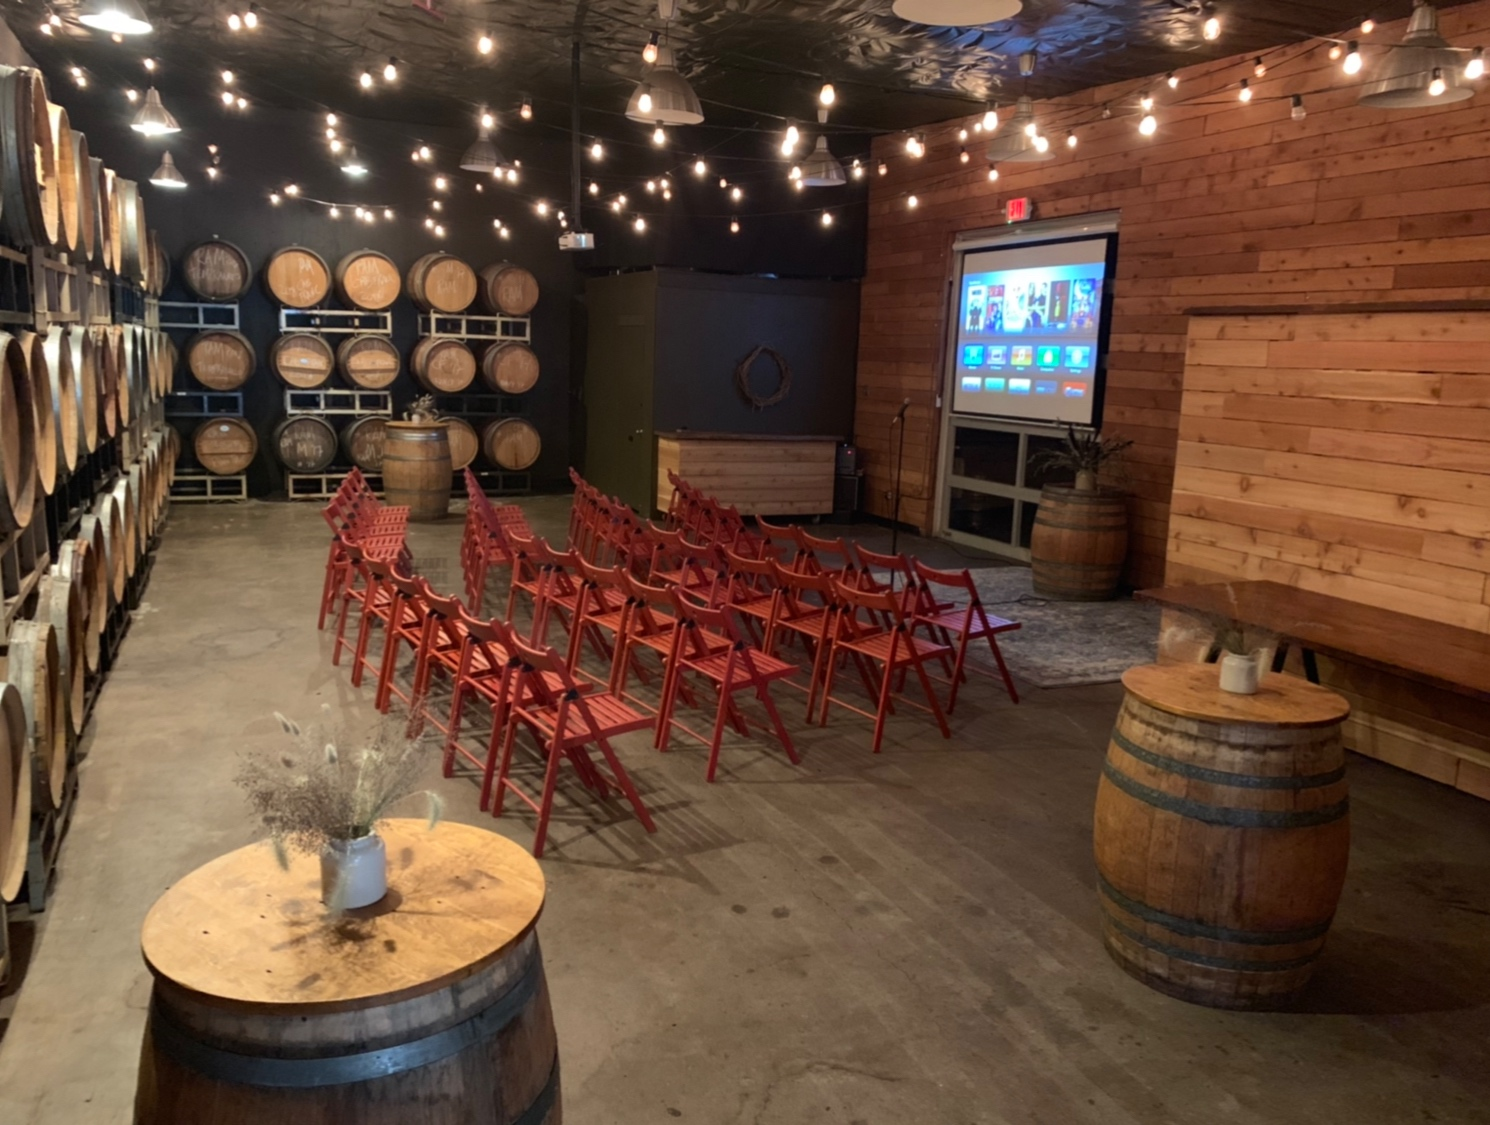 BARREL ROOM - Maximum 60 people standing / 40 people seated$200 / hour, including set-up and clean-upAlcohol minimum is $25018% Gratuity